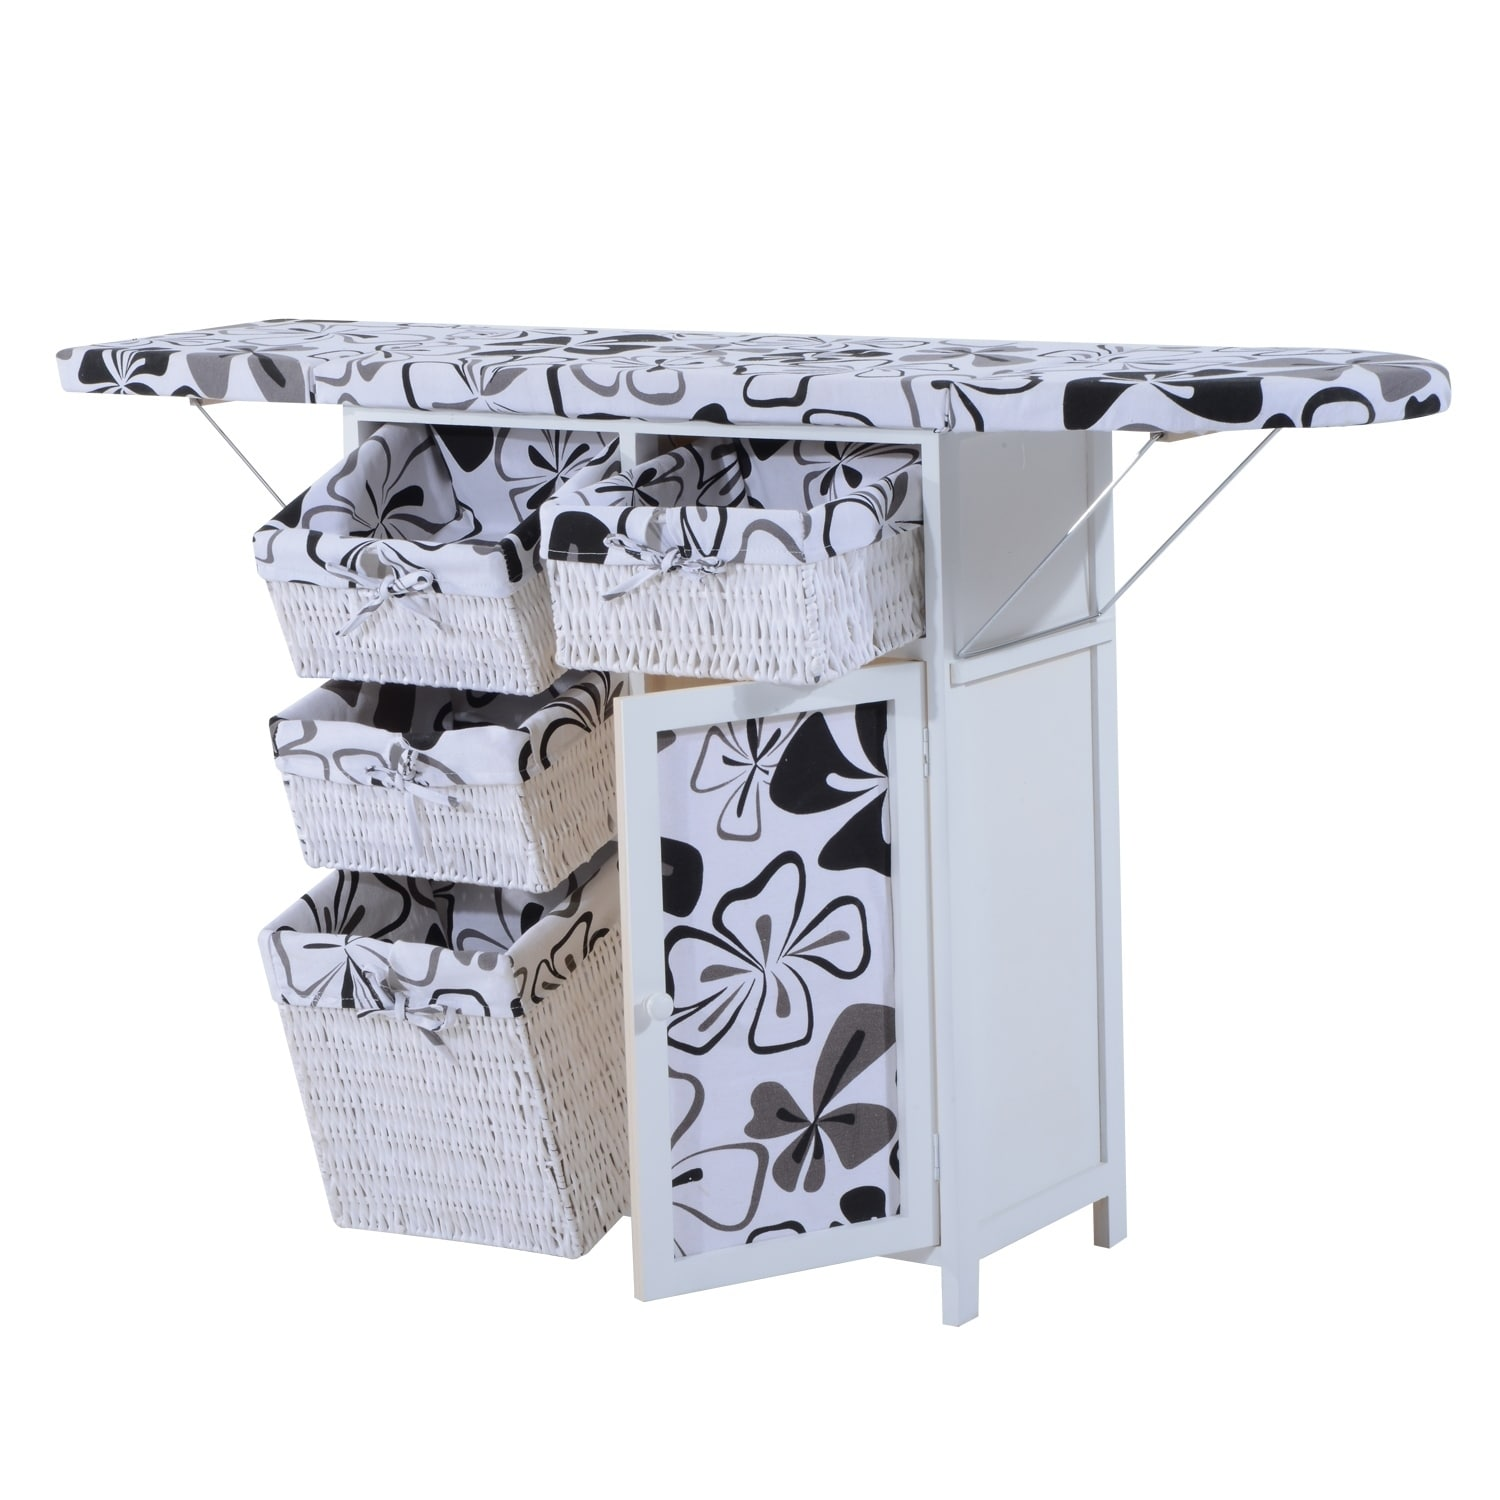 Homcom Wood Wicker Ironing Board Center With Baskets White Free Shipping Today 18038513